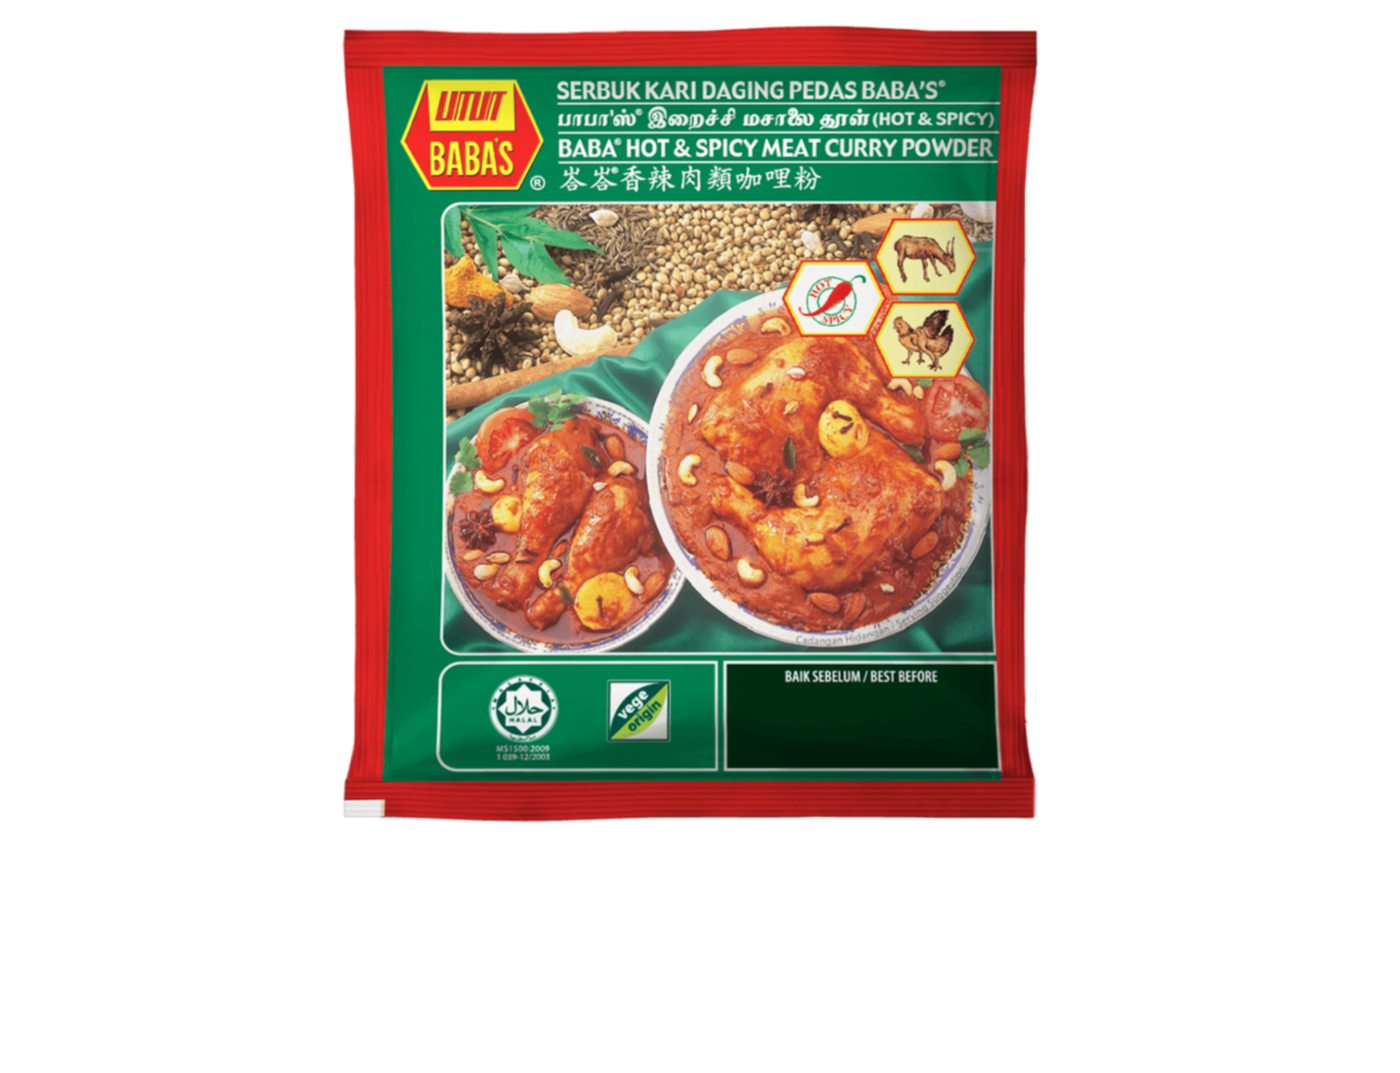 BABAS Hot & Spicy Meat Curry Powder